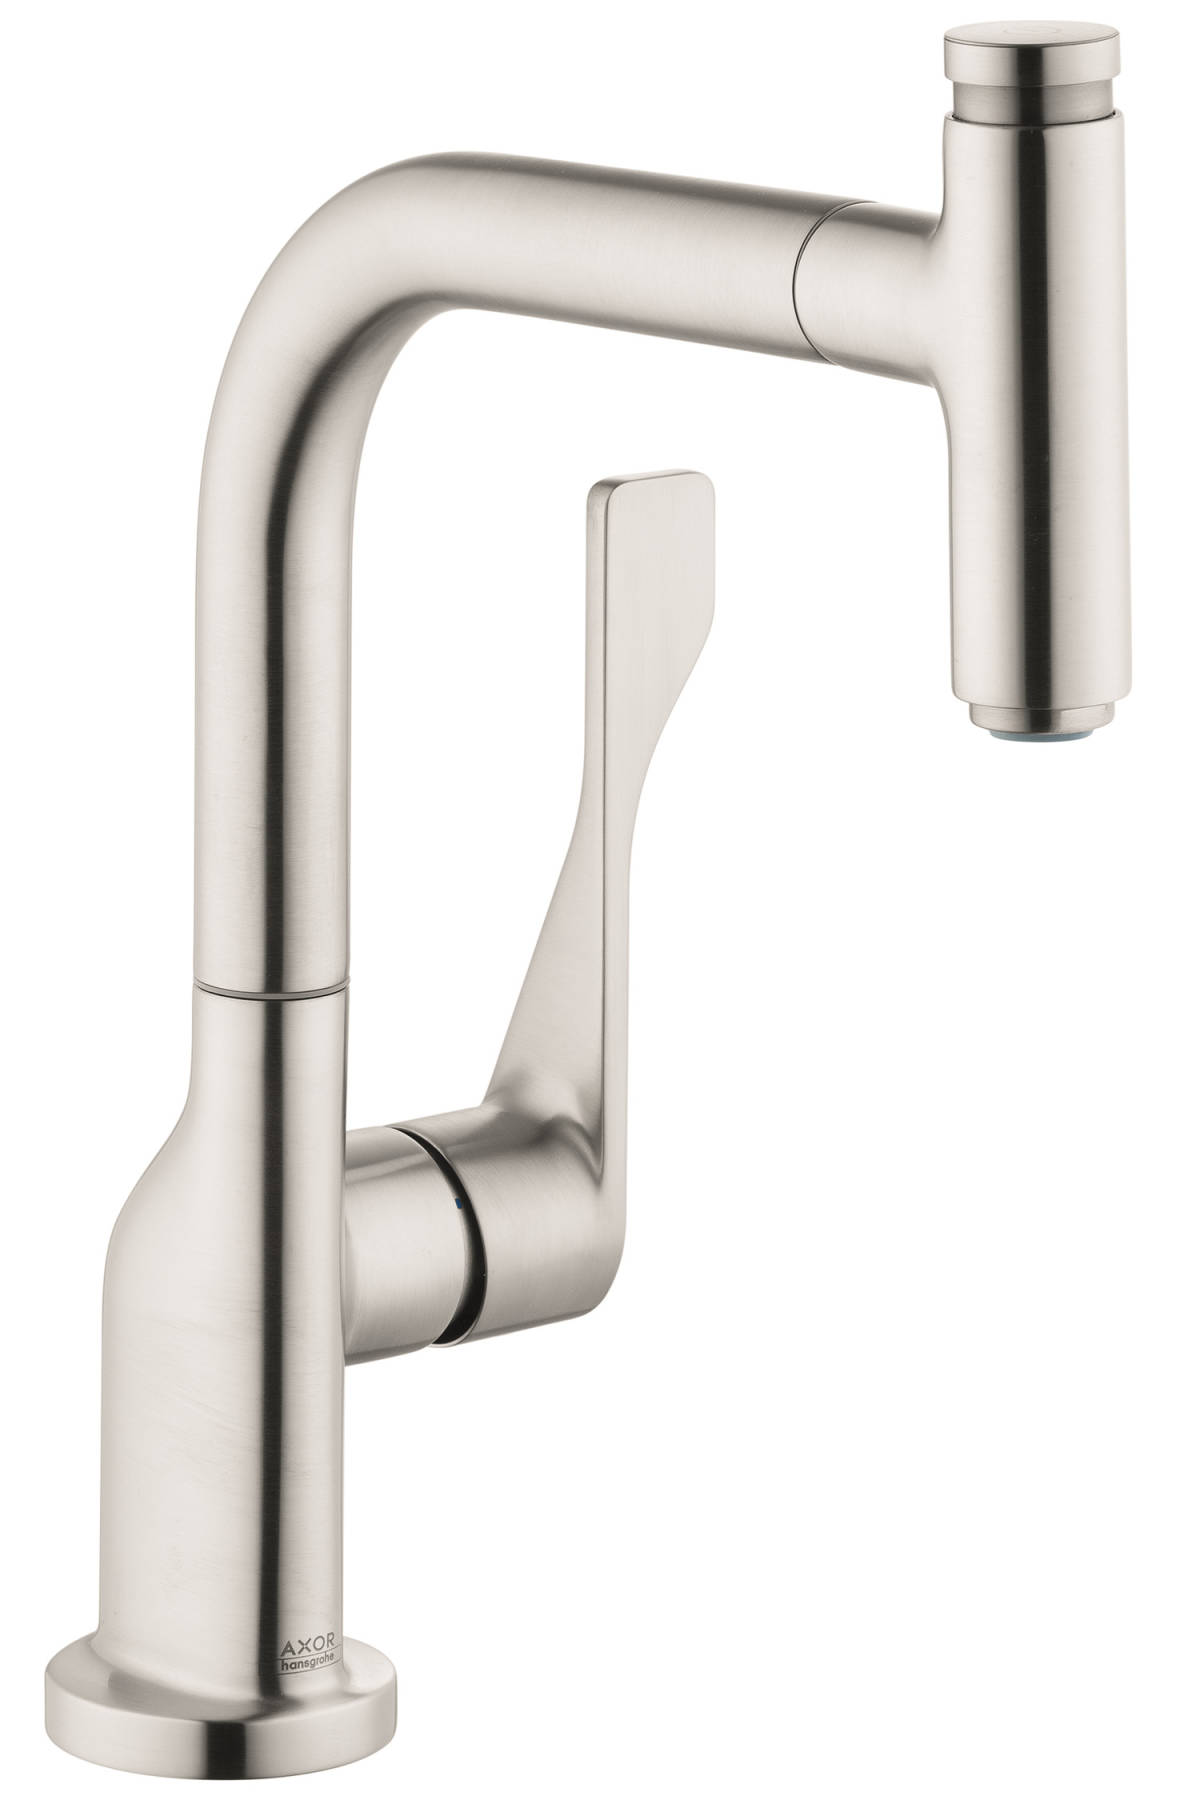 AXOR Citterio Select 1-Spray Kitchen Faucet, Pull-Out, 1.75 GPM, steel optic, 39861801